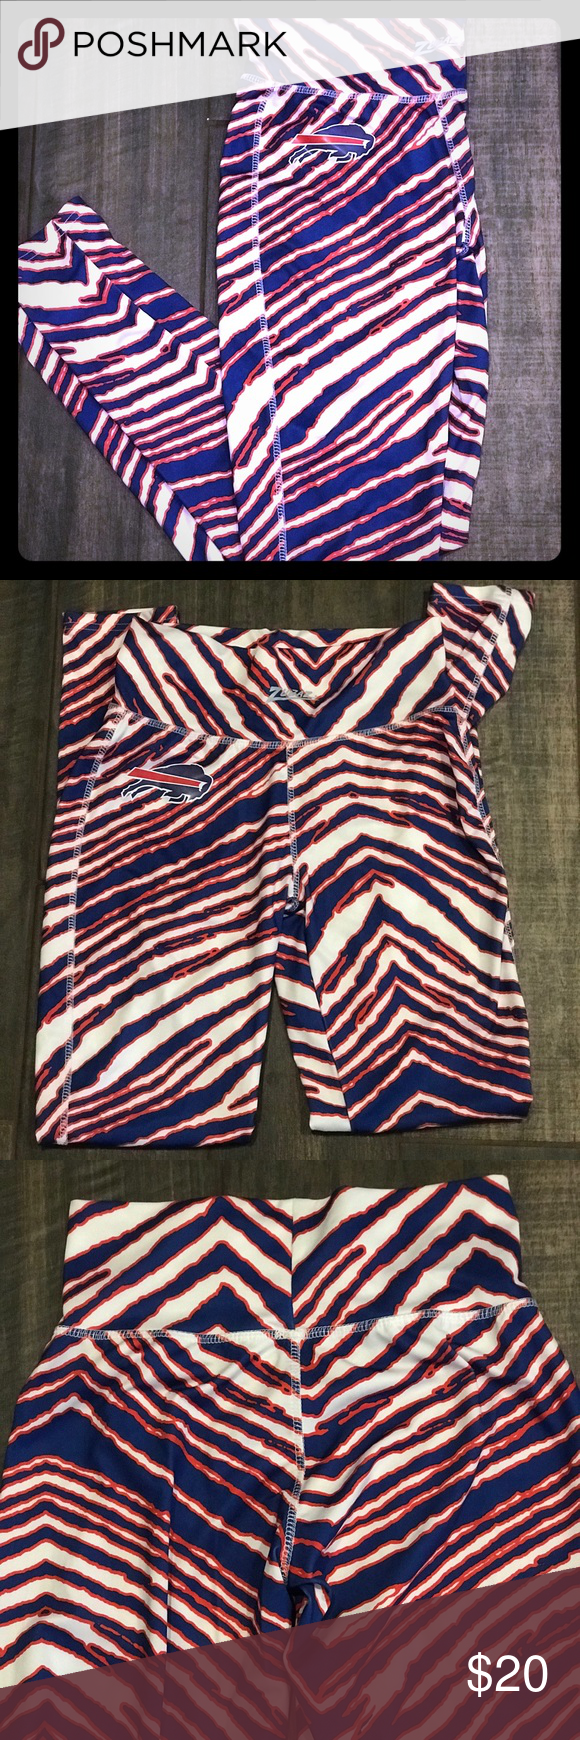 Buffalo Bills Zubaz Leggings Nwot Never Worn Perfect For The Upcoming Football Session Pair With A Jersey H Leggings Are Not Pants Tailgate Outfit Leggings